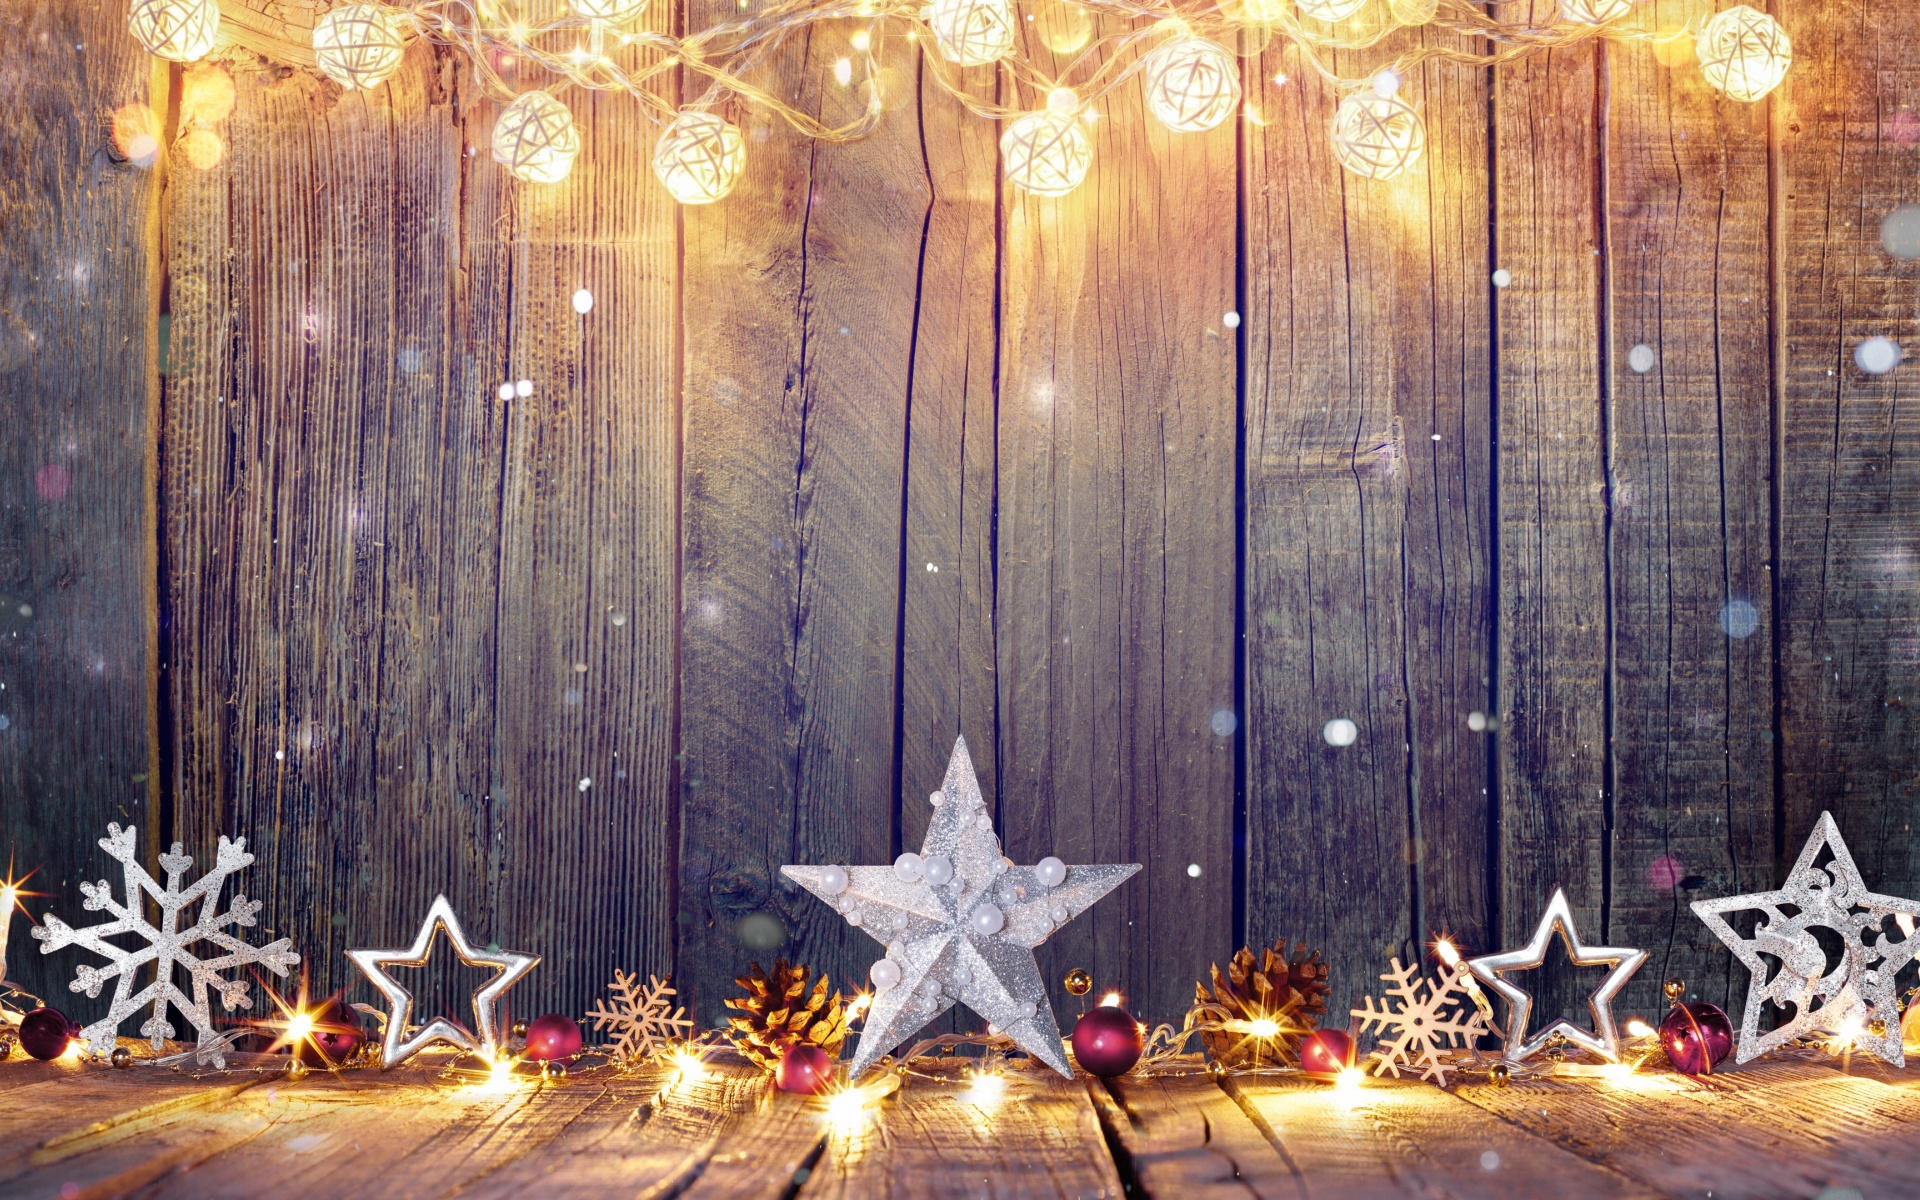 Merry Christmas Stars Decorations In Wall Wallpaper 11660   Baltana 1920x1200